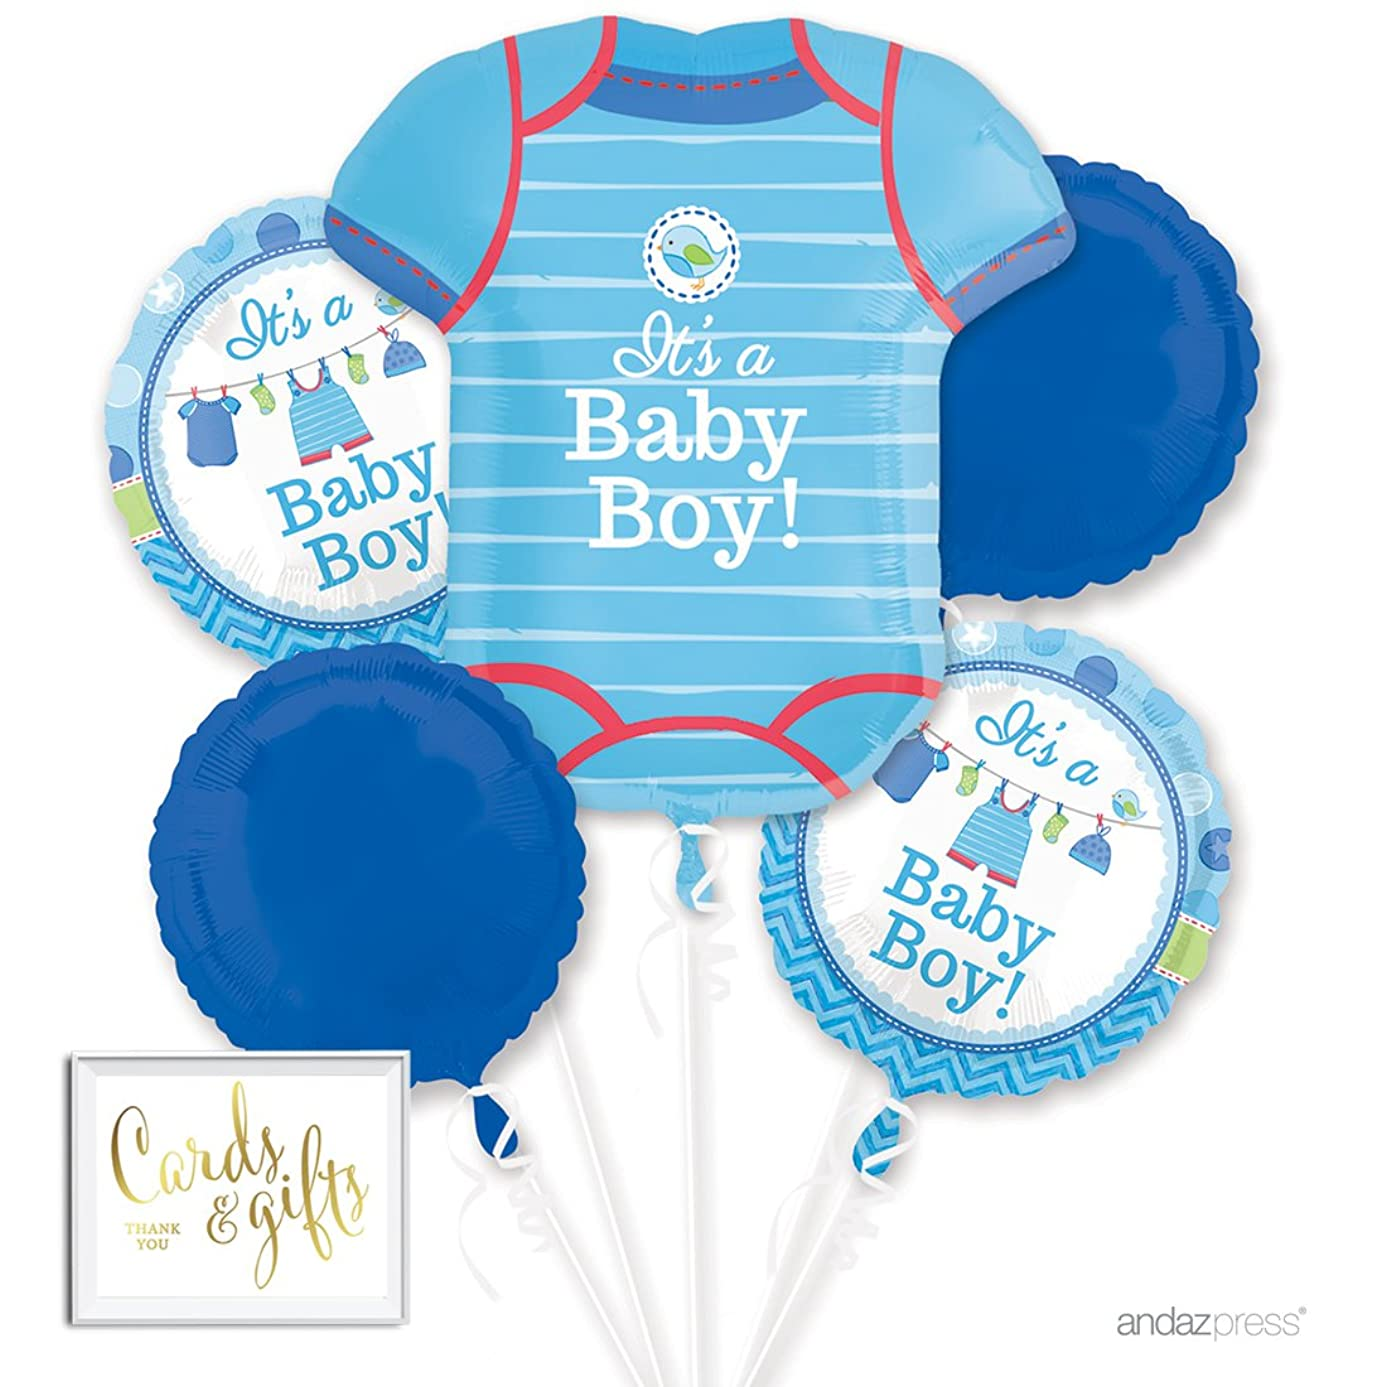 Andaz Press Balloon Bouquet Party Kit with Gold Cards & Gifts Sign, Boy Baby Shower Onesie Foil Mylar Balloon Decorations, 1-Set